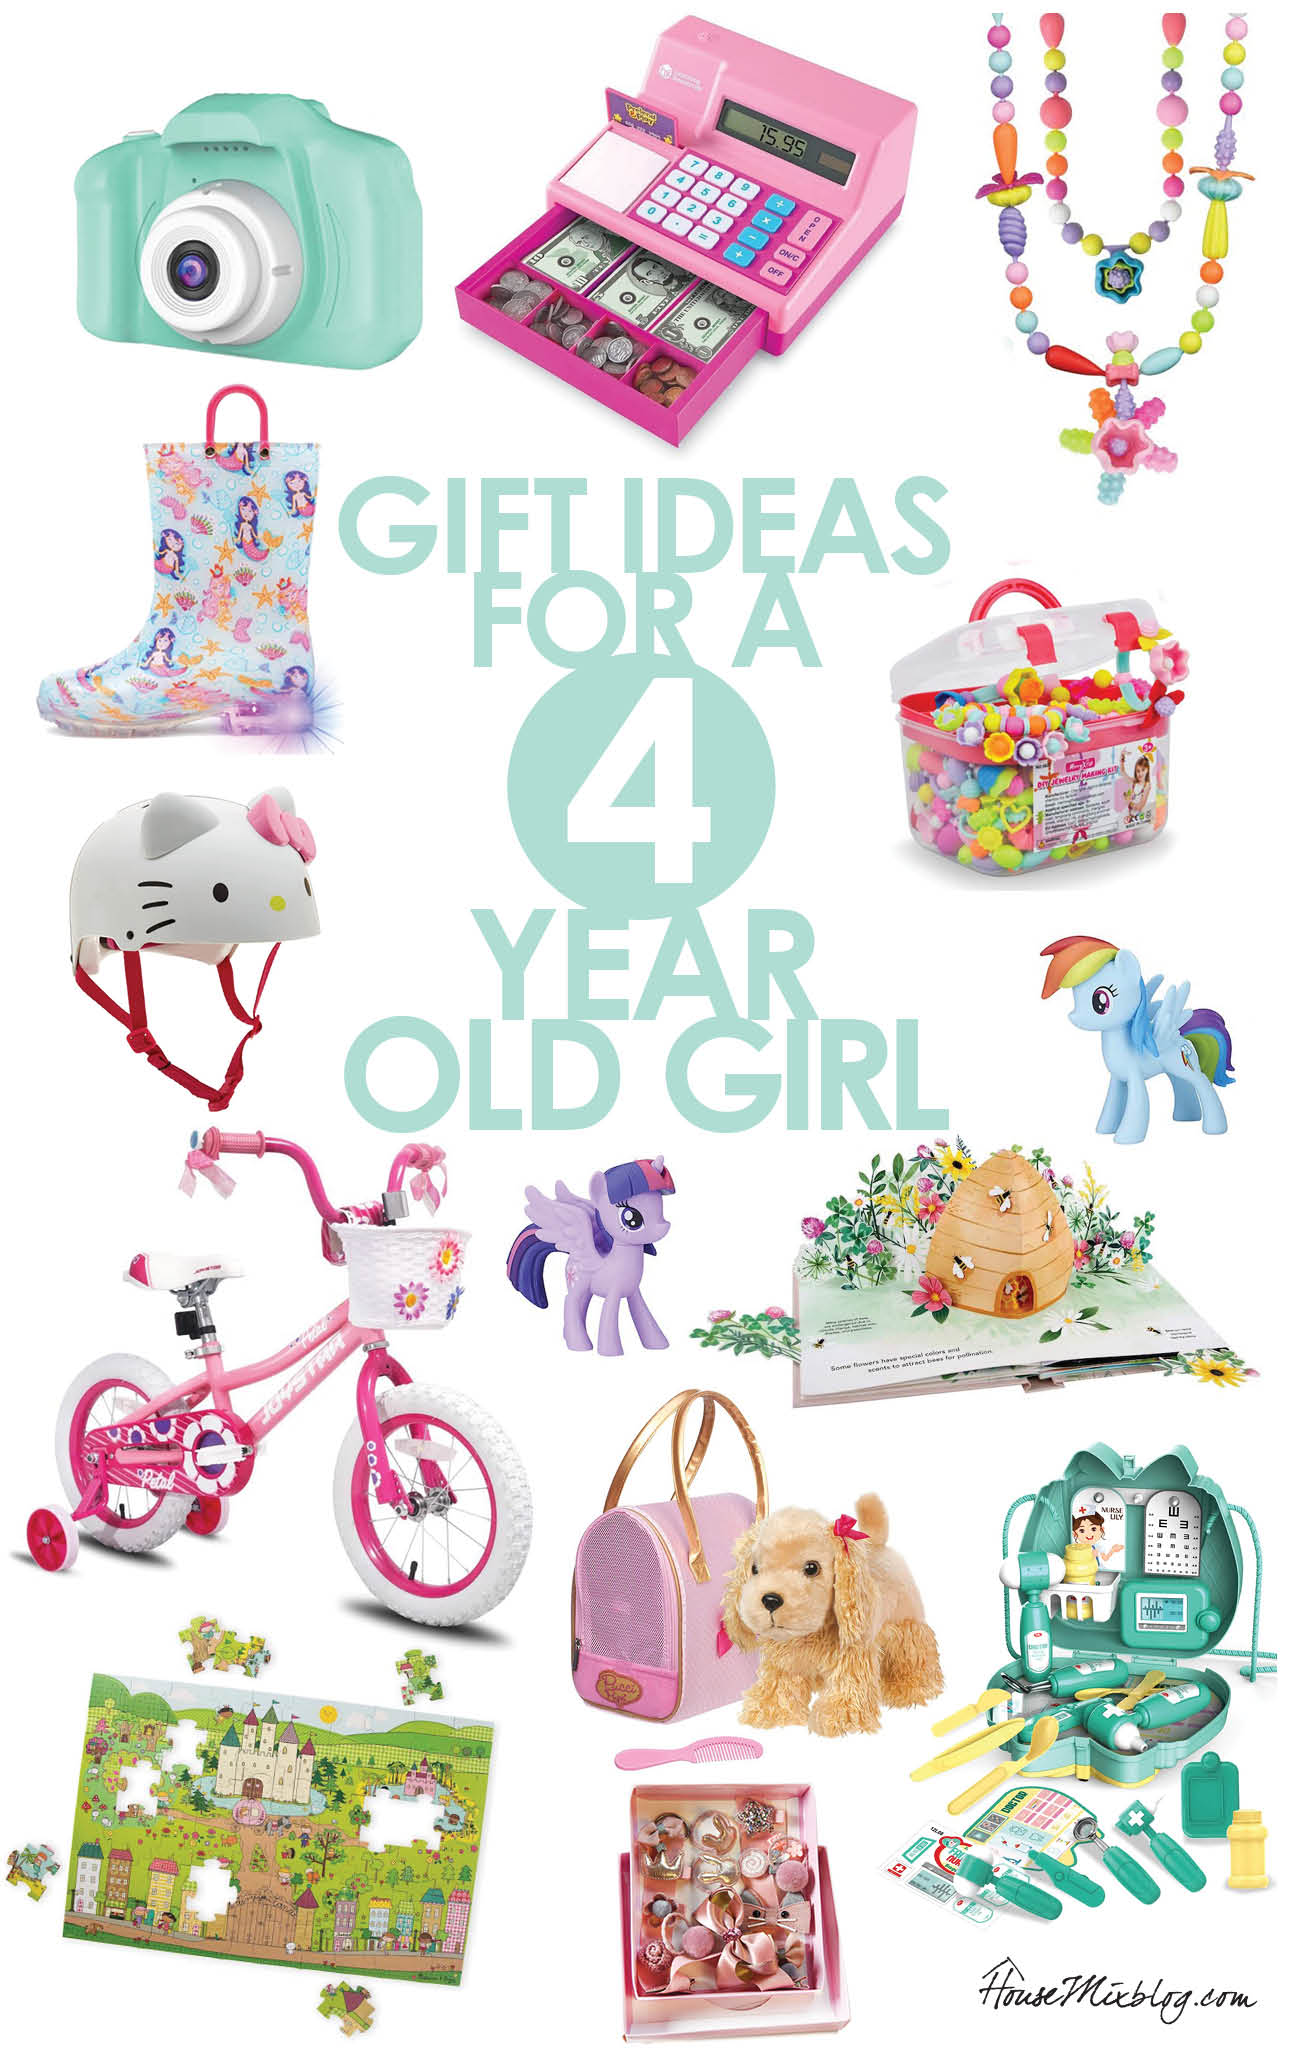 Toddler toys - Present or gift ideas for a 4 year old girl